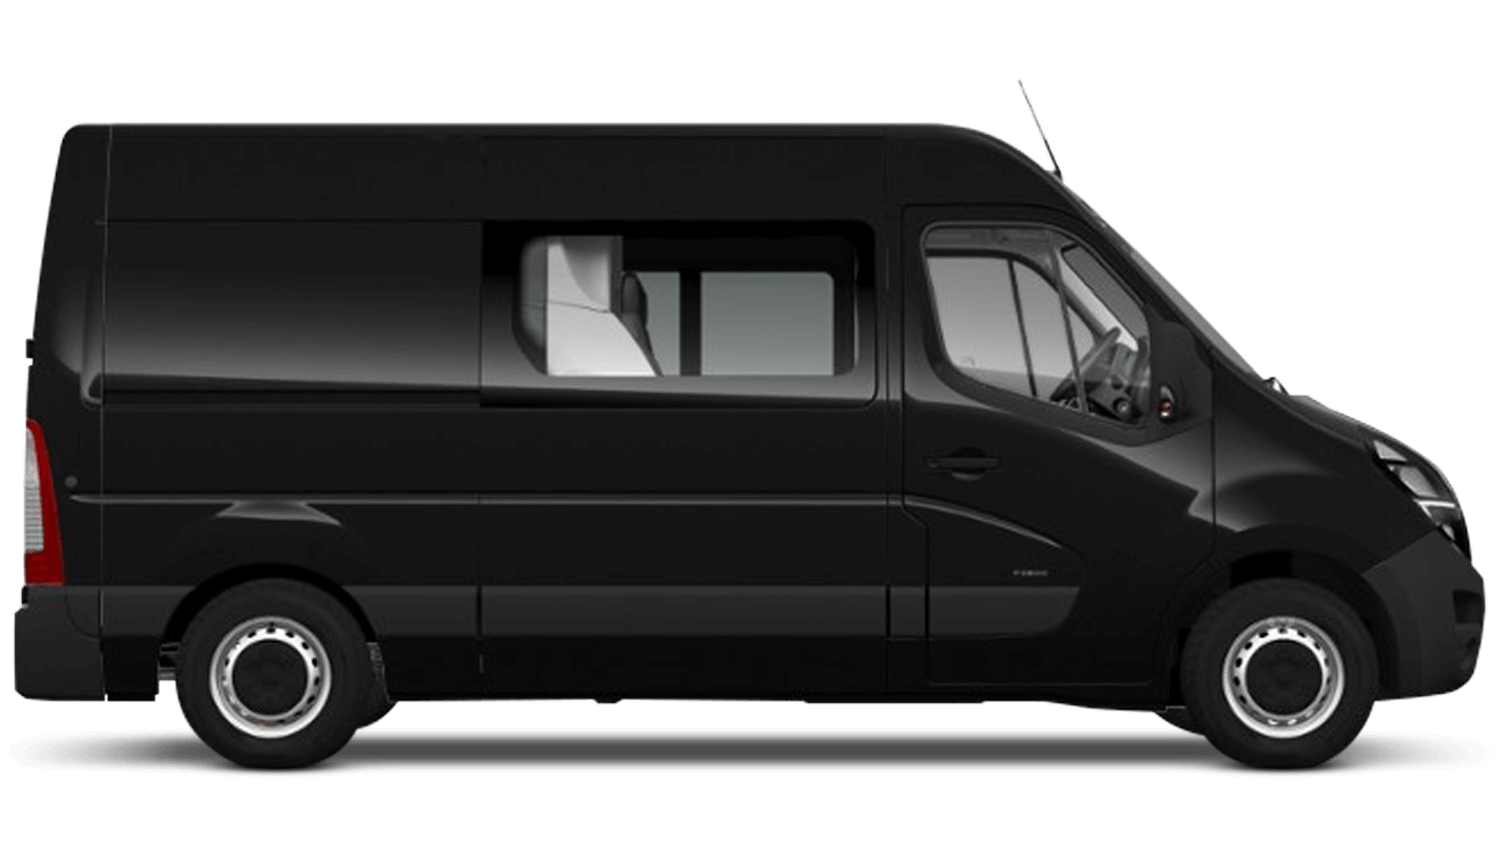 Pearl Black (Metallic) New Vauxhall Movano